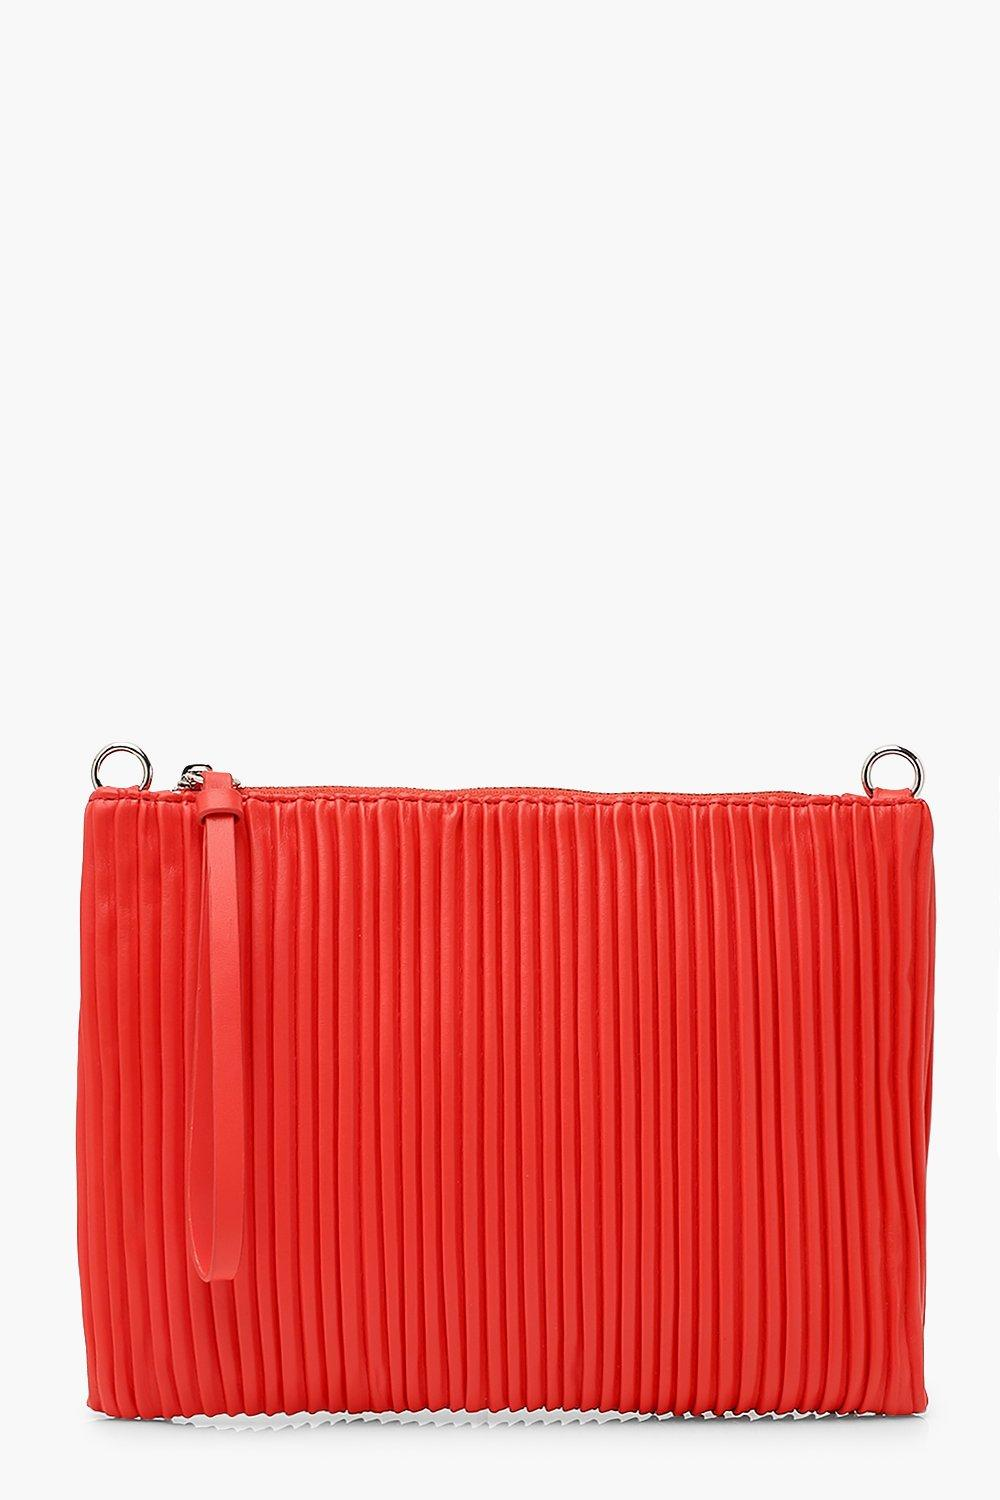 boohoo Womens Pleated Pu Zip Top Clutch Bag - Red - One Size, Red